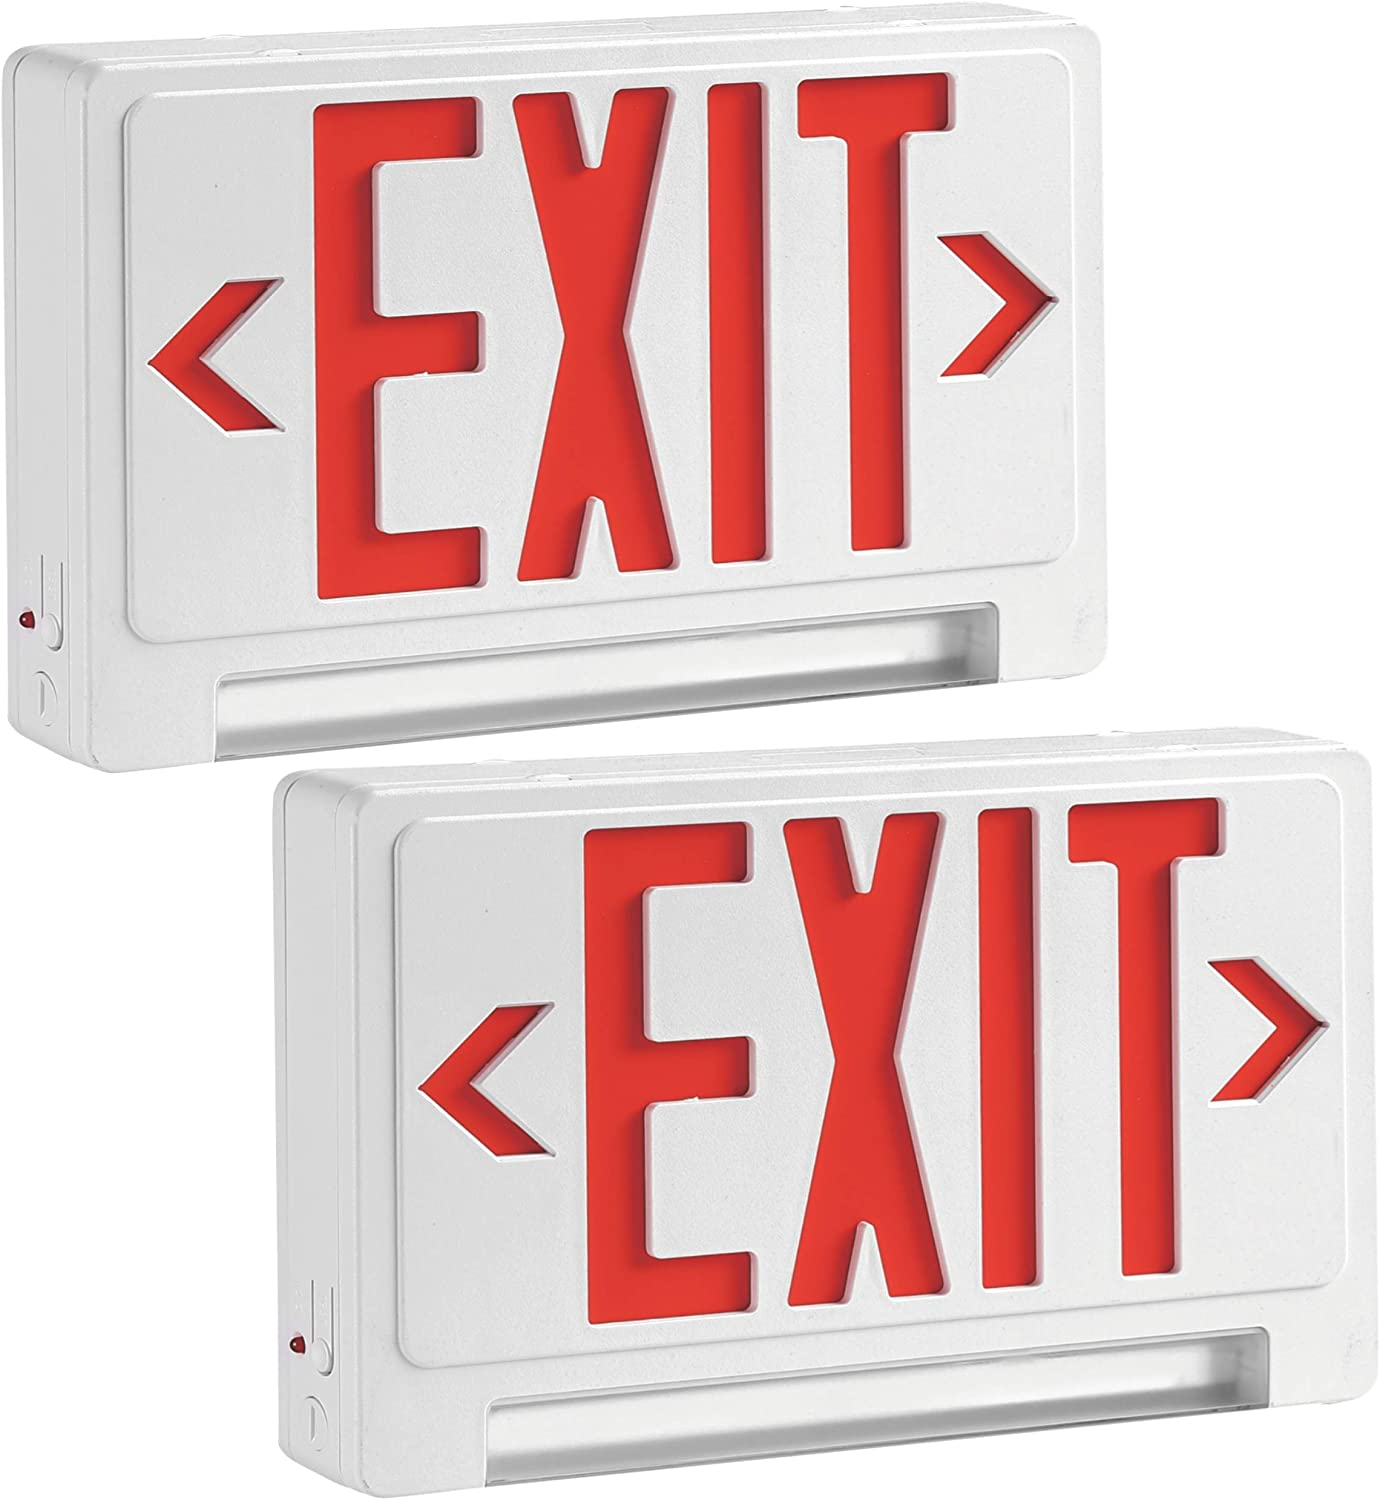 LED emergency light exit sign with battery backup light bulb, Pack of 2, Exit Sign Combo, Indoor Hallway or Room Safety for Residential, Commercial or Industrial Use, rechargeable emergency led bulb